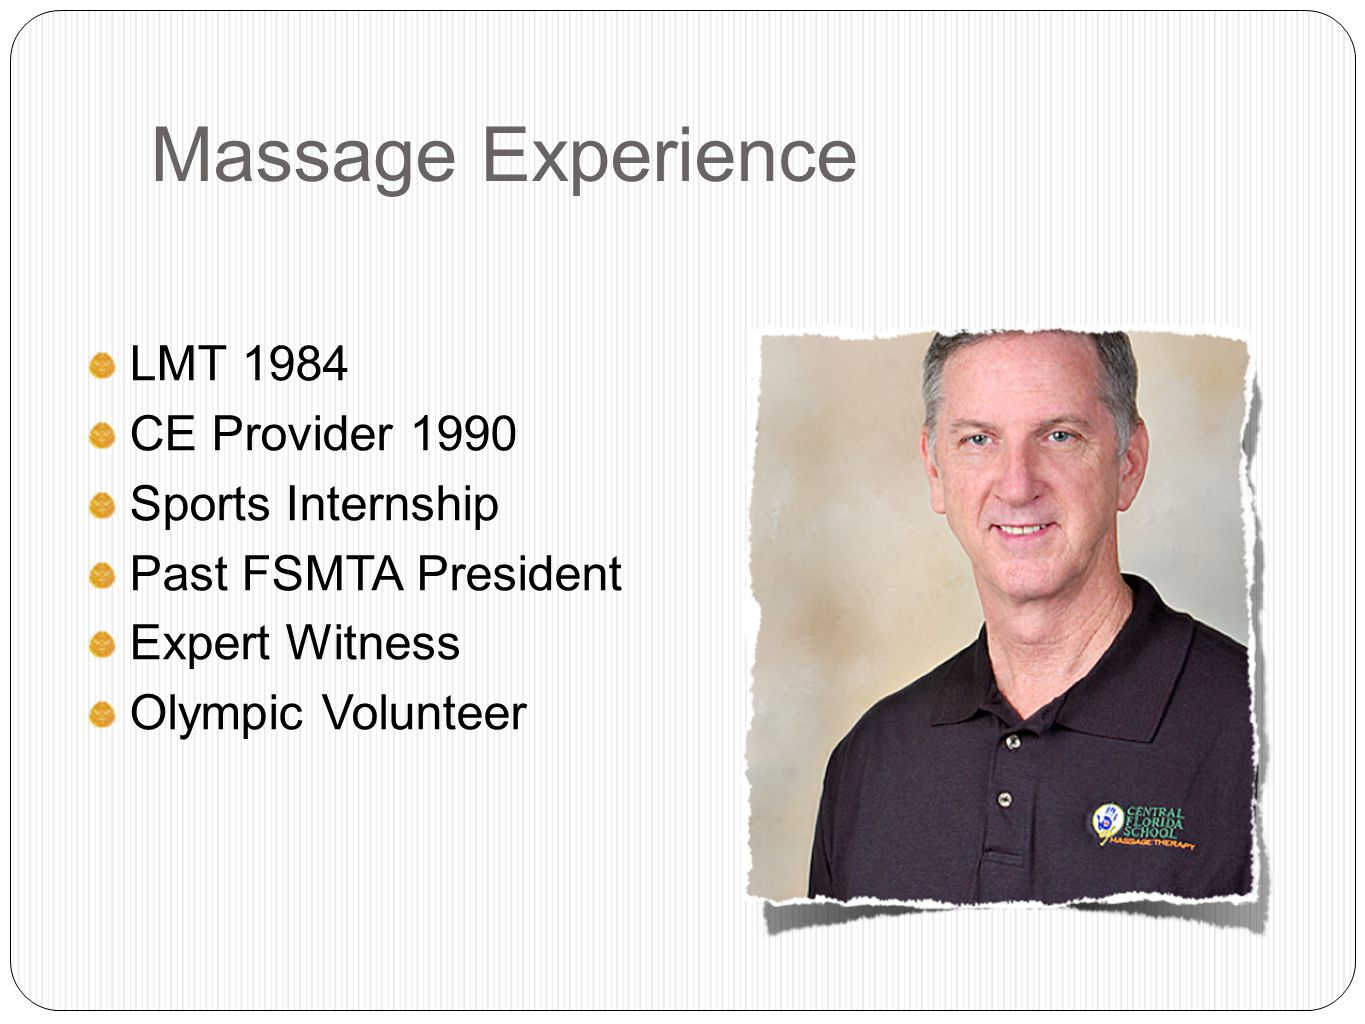 Massage Experience LMT 1984 CE Provider 1990 Sports Internship Past FSMTA President Expert Witness Olympic Volunteer